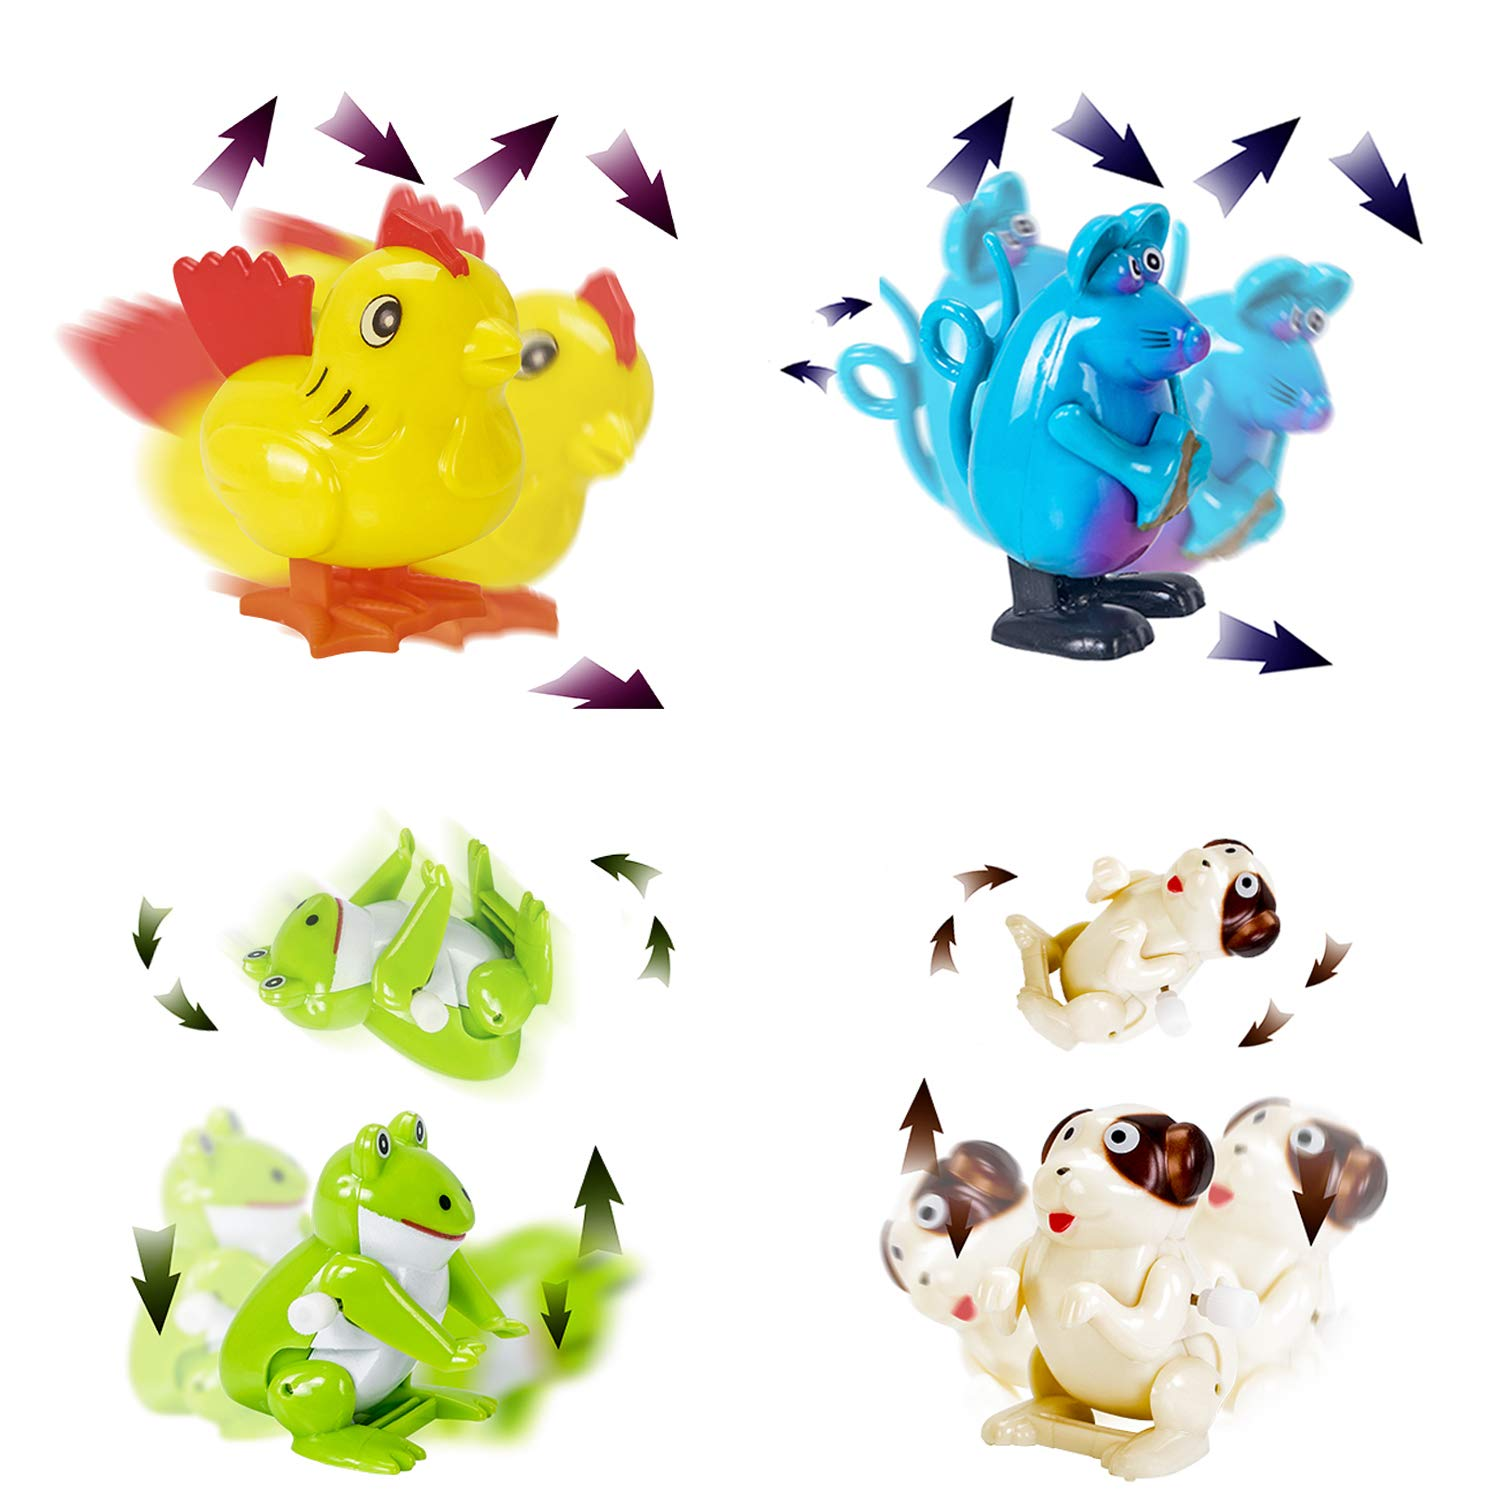 WishaLife Hatchimal Surprise Hatching Egg - Set of 8 Wind Up Animals Toys for Kids Birthday Gifts Party Favor (Includes Mouse, Dog, Dinosaur, Chick, Frog, Ladybug, Crab, Larva, Wooden Hammer) by WishaLife (Image #2)